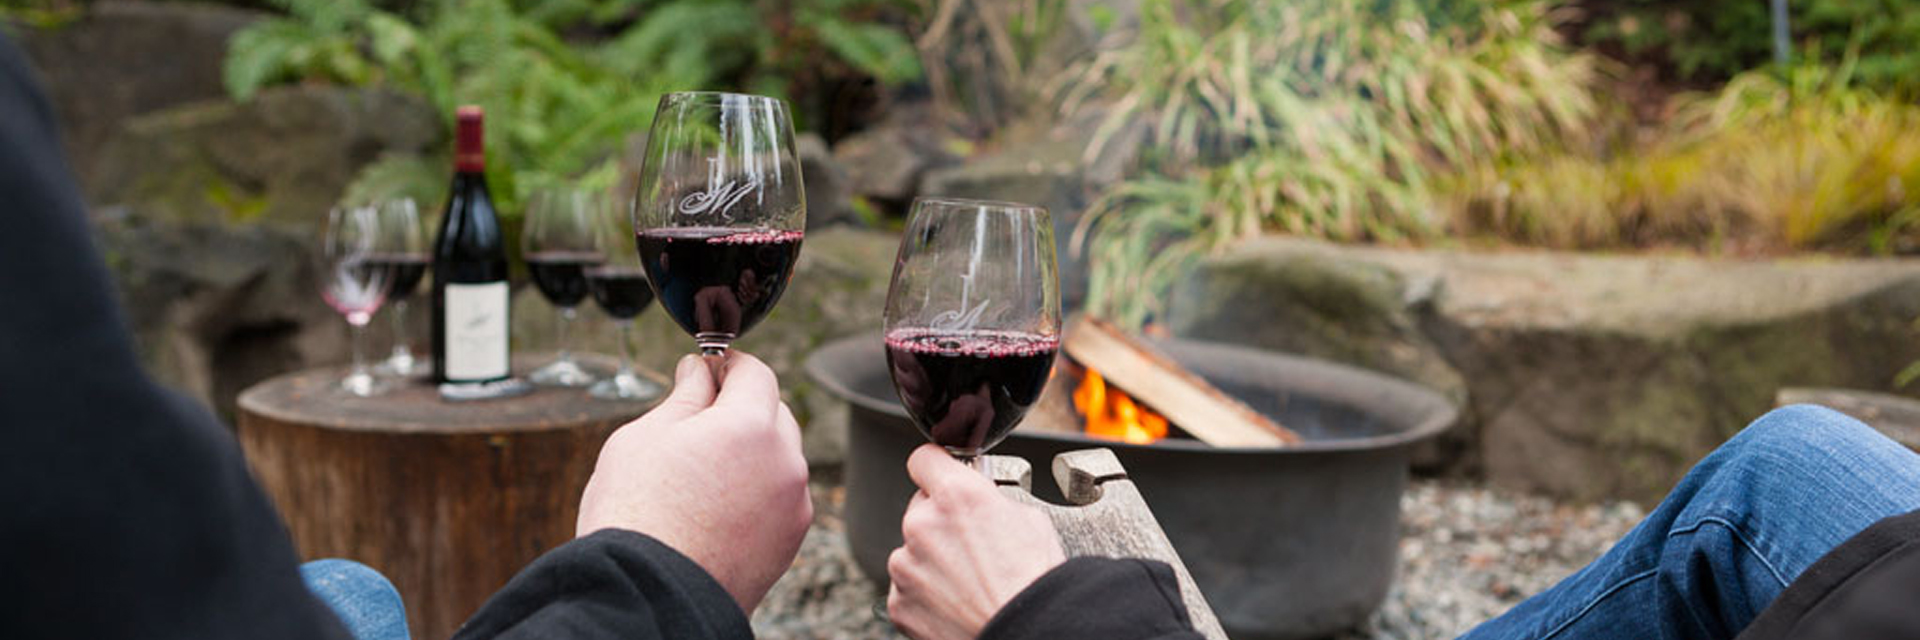 A man and a woman's hands each holding a glass of red wine while sitting in front of a firepit, with more wine glasses and a wine bottle sit atop a log table